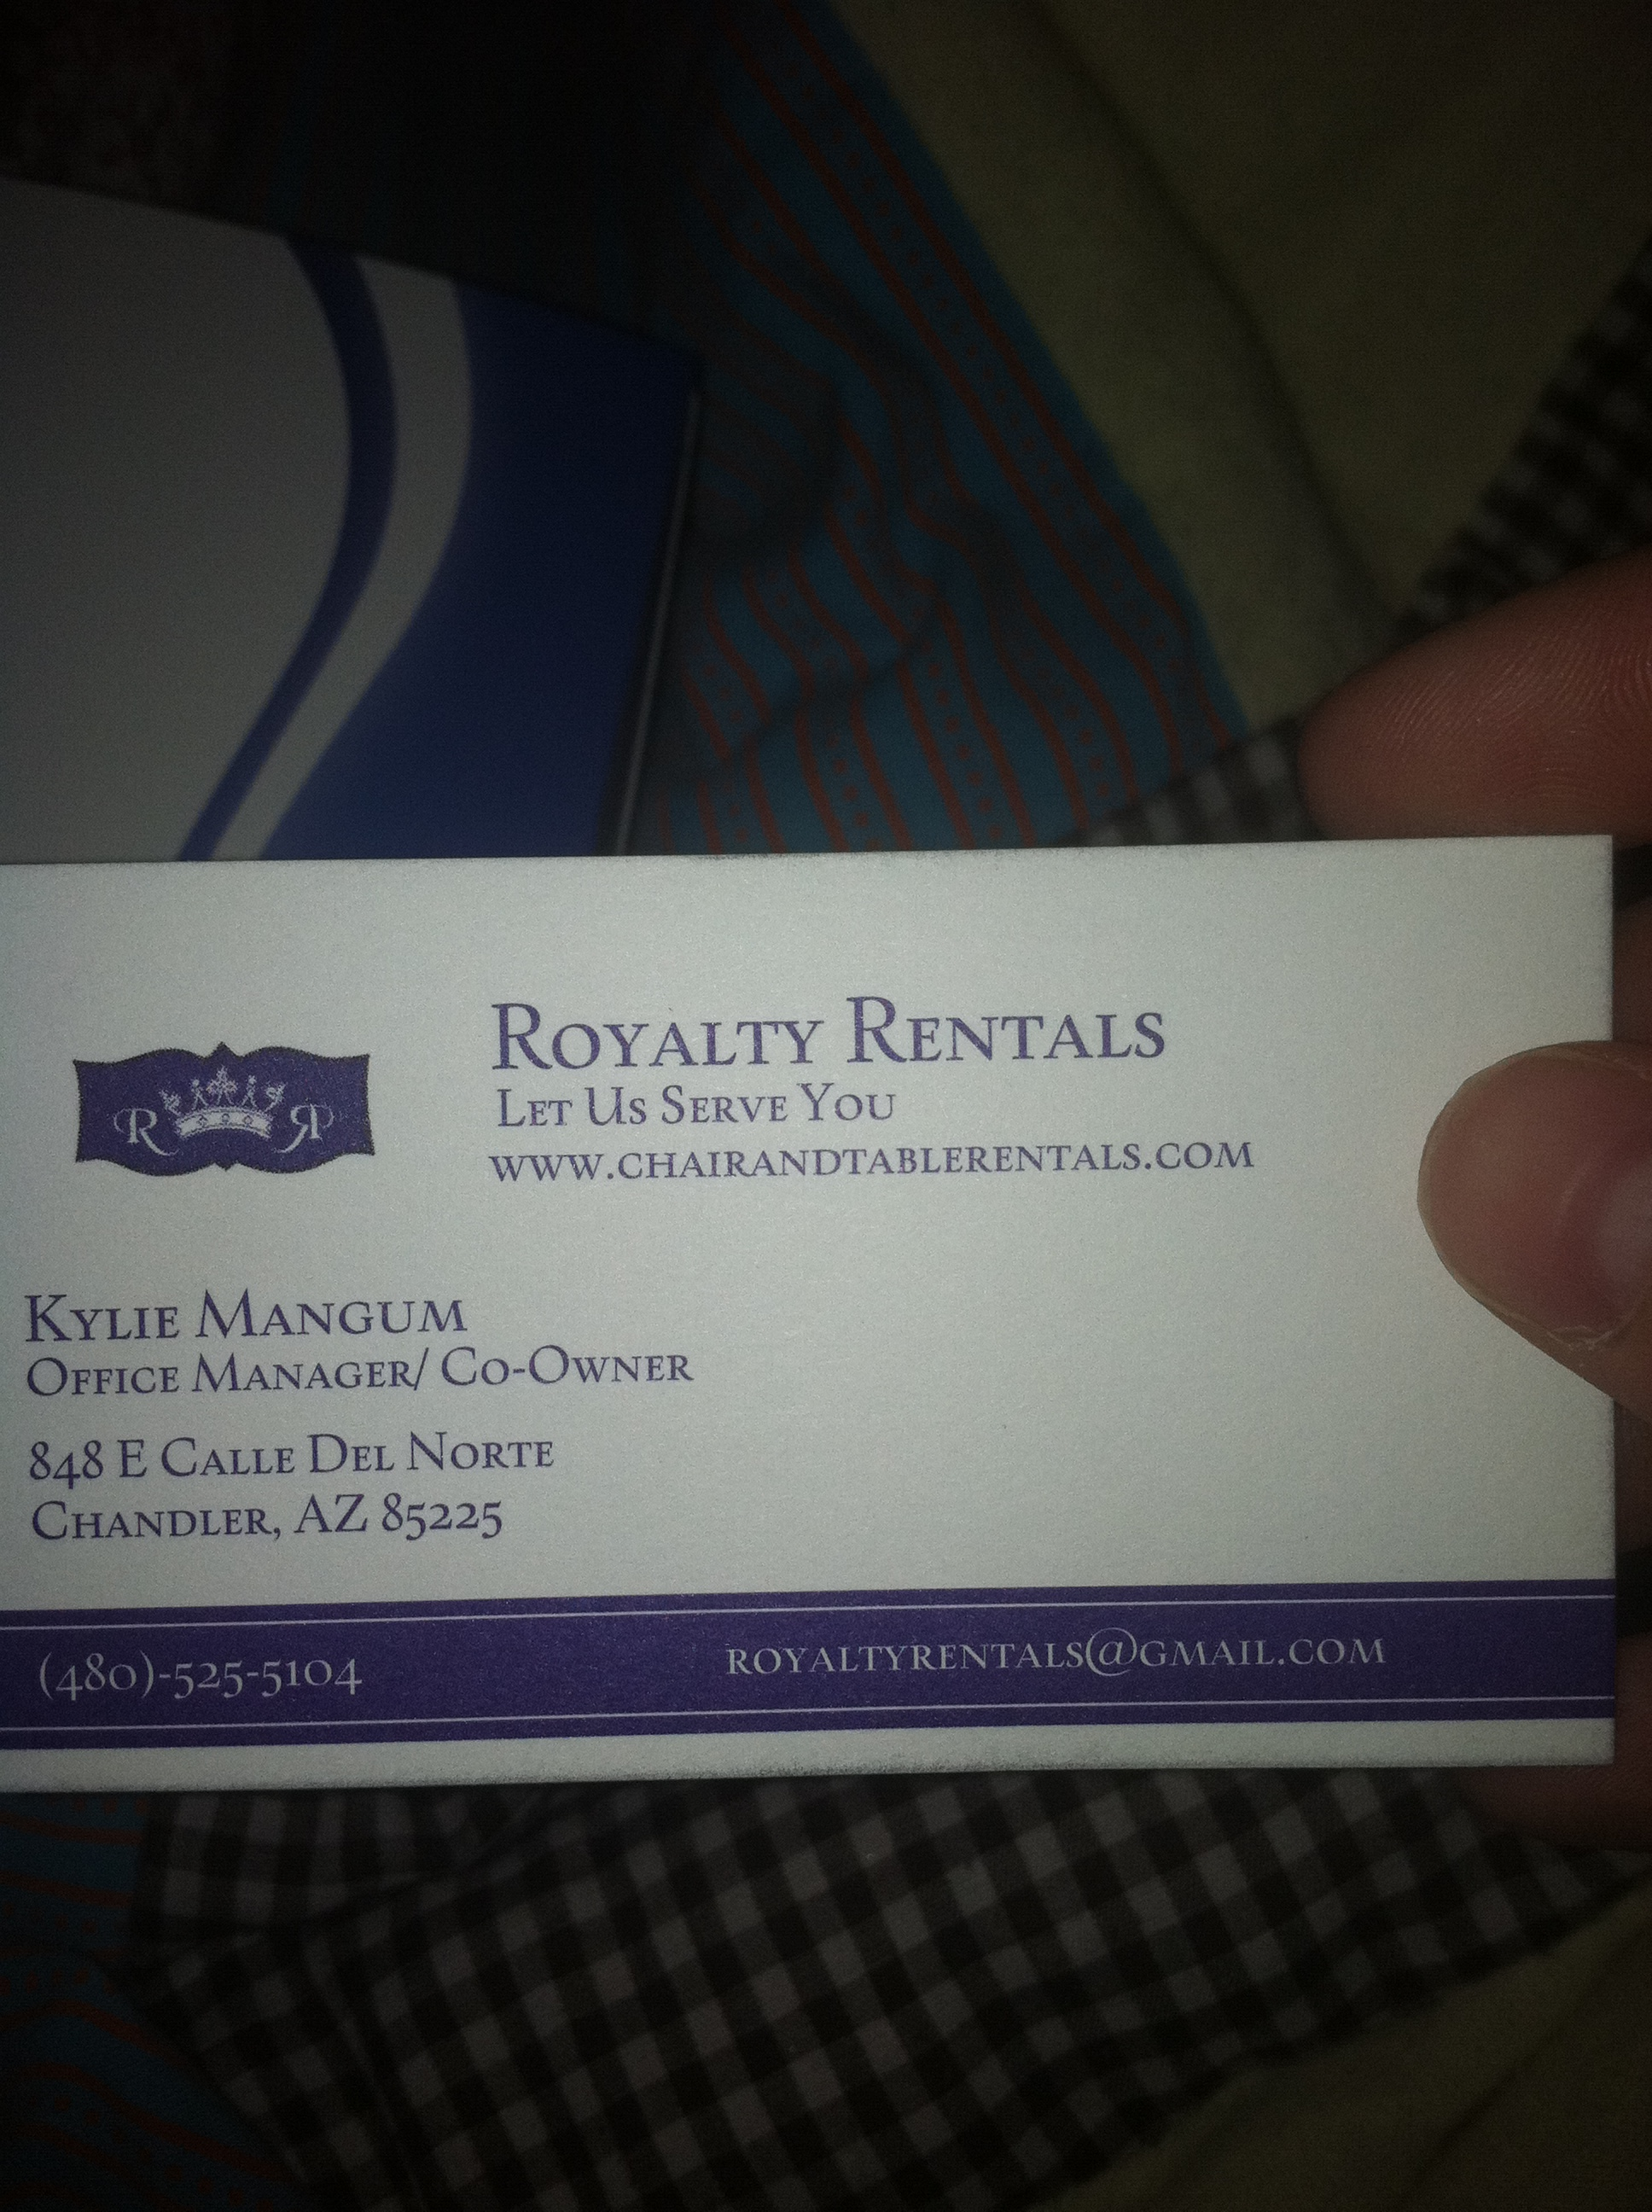 Review Of 2011 Royalty Rentals